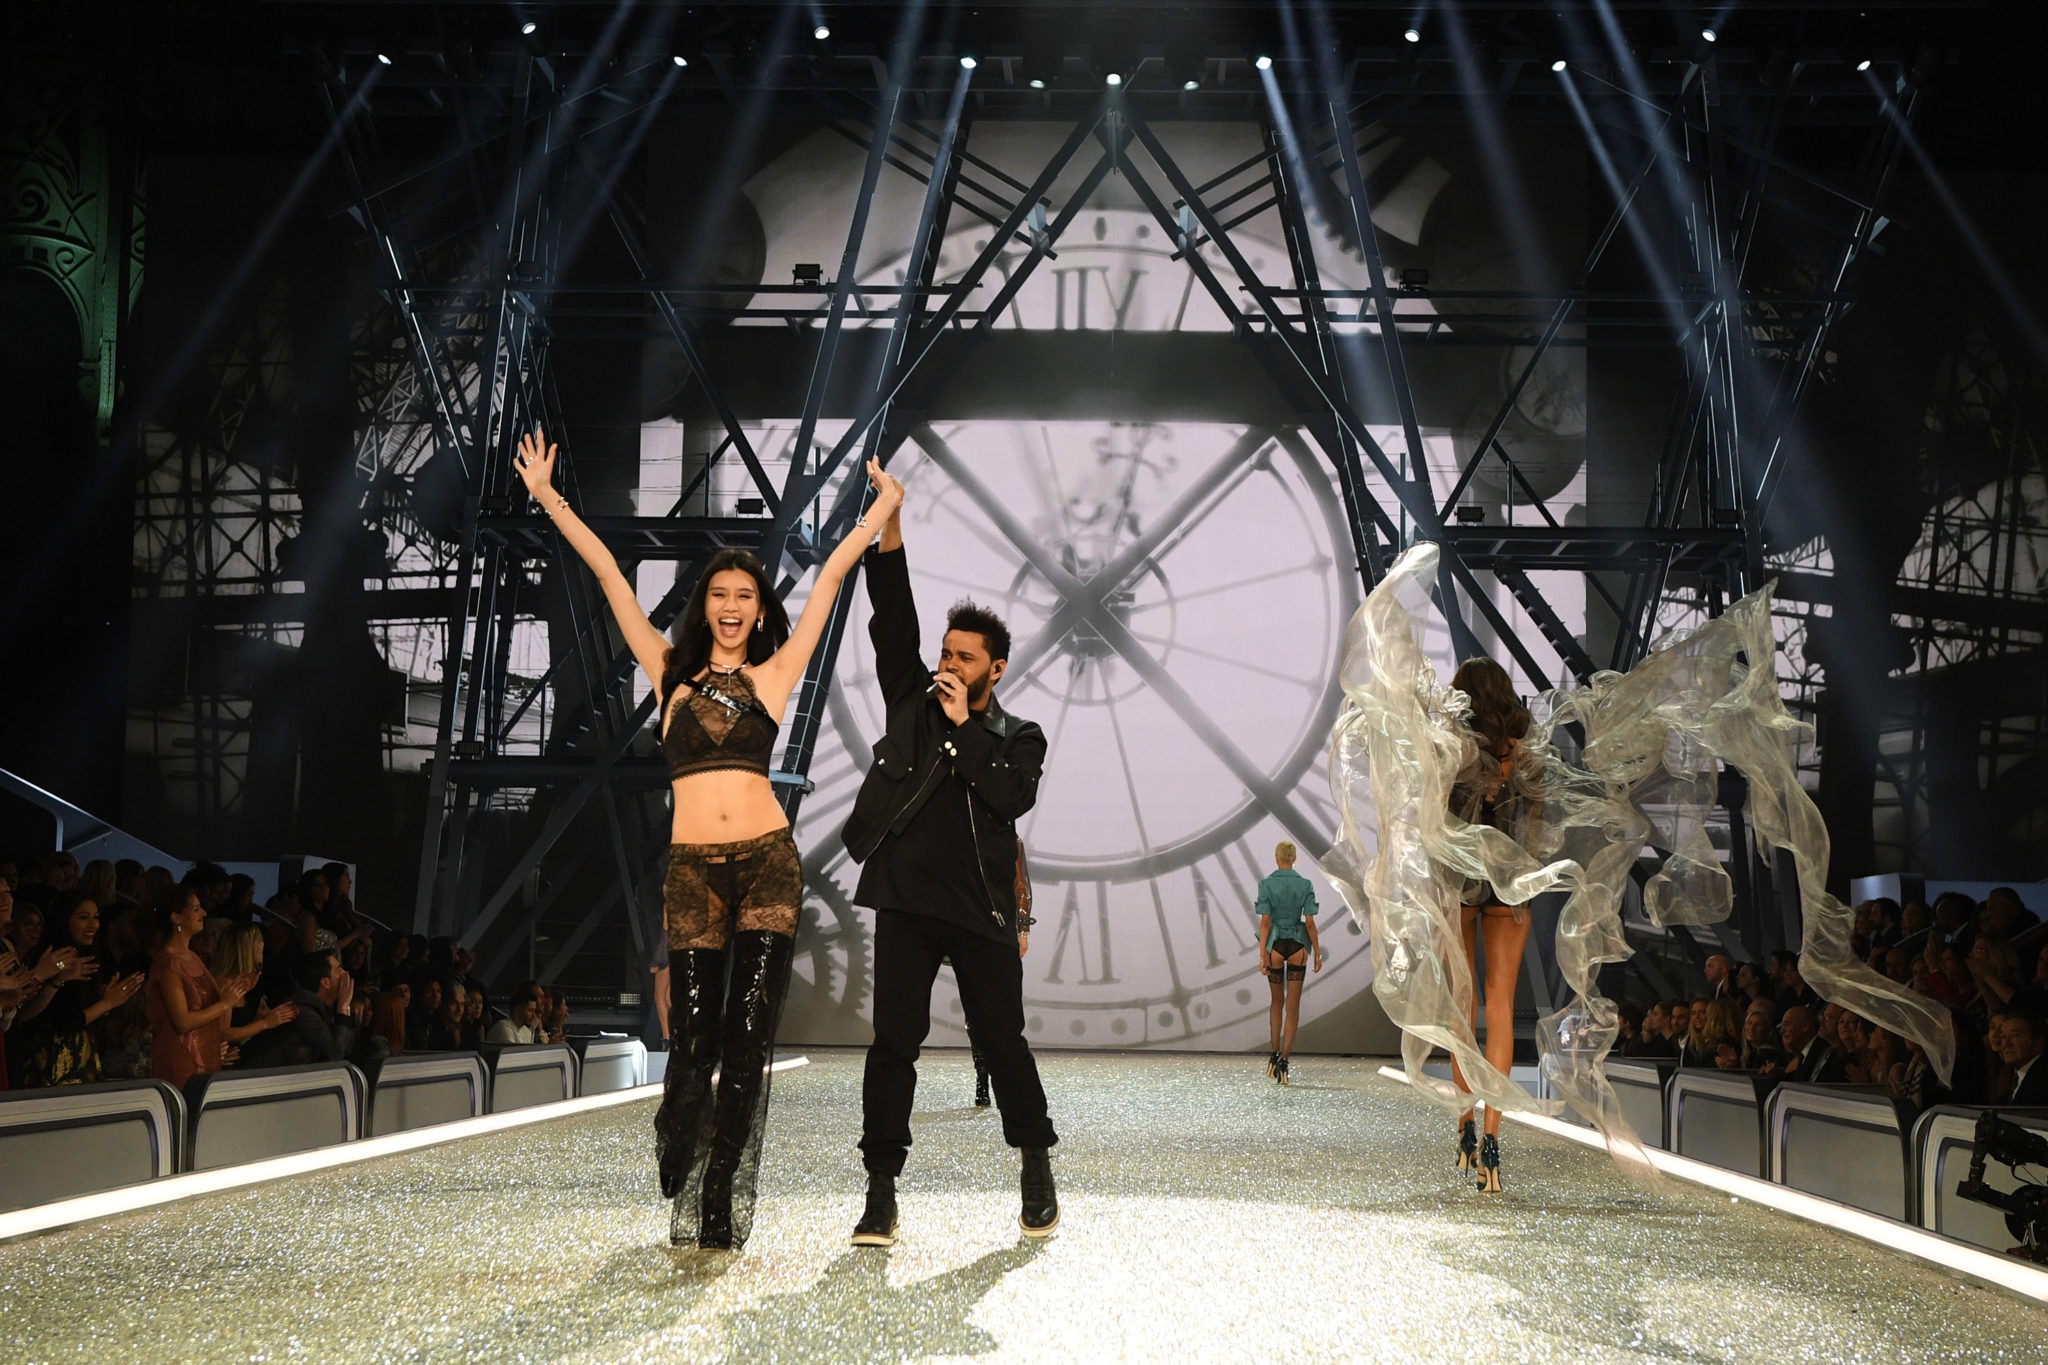 PARIS, FRANCE - NOVEMBER 30: Ming Xi walks the runway while The Weeknd performs during the 2016 Victoria's Secret Fashion Show on November 30, 2016 in Paris, France. (Photo by Dimitrios Kambouris/Getty Images for Victoria's Secret)